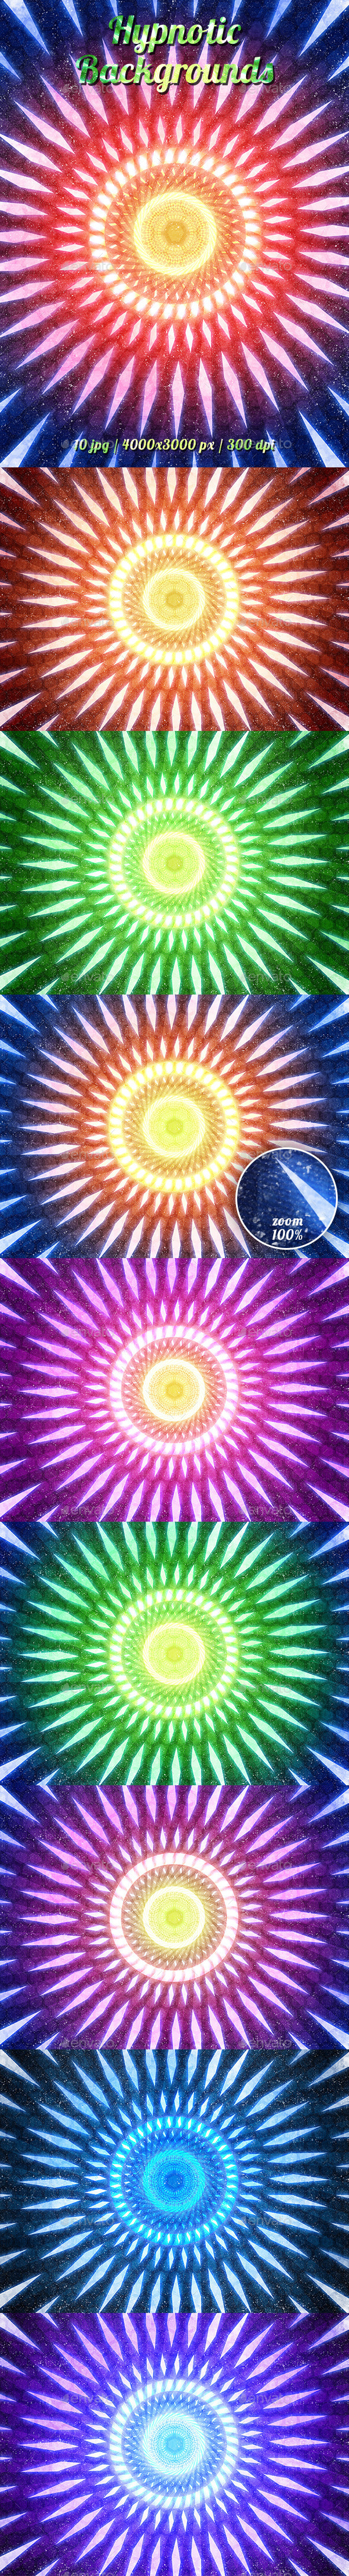 GraphicRiver Hypnotic Backgrounds 11453763